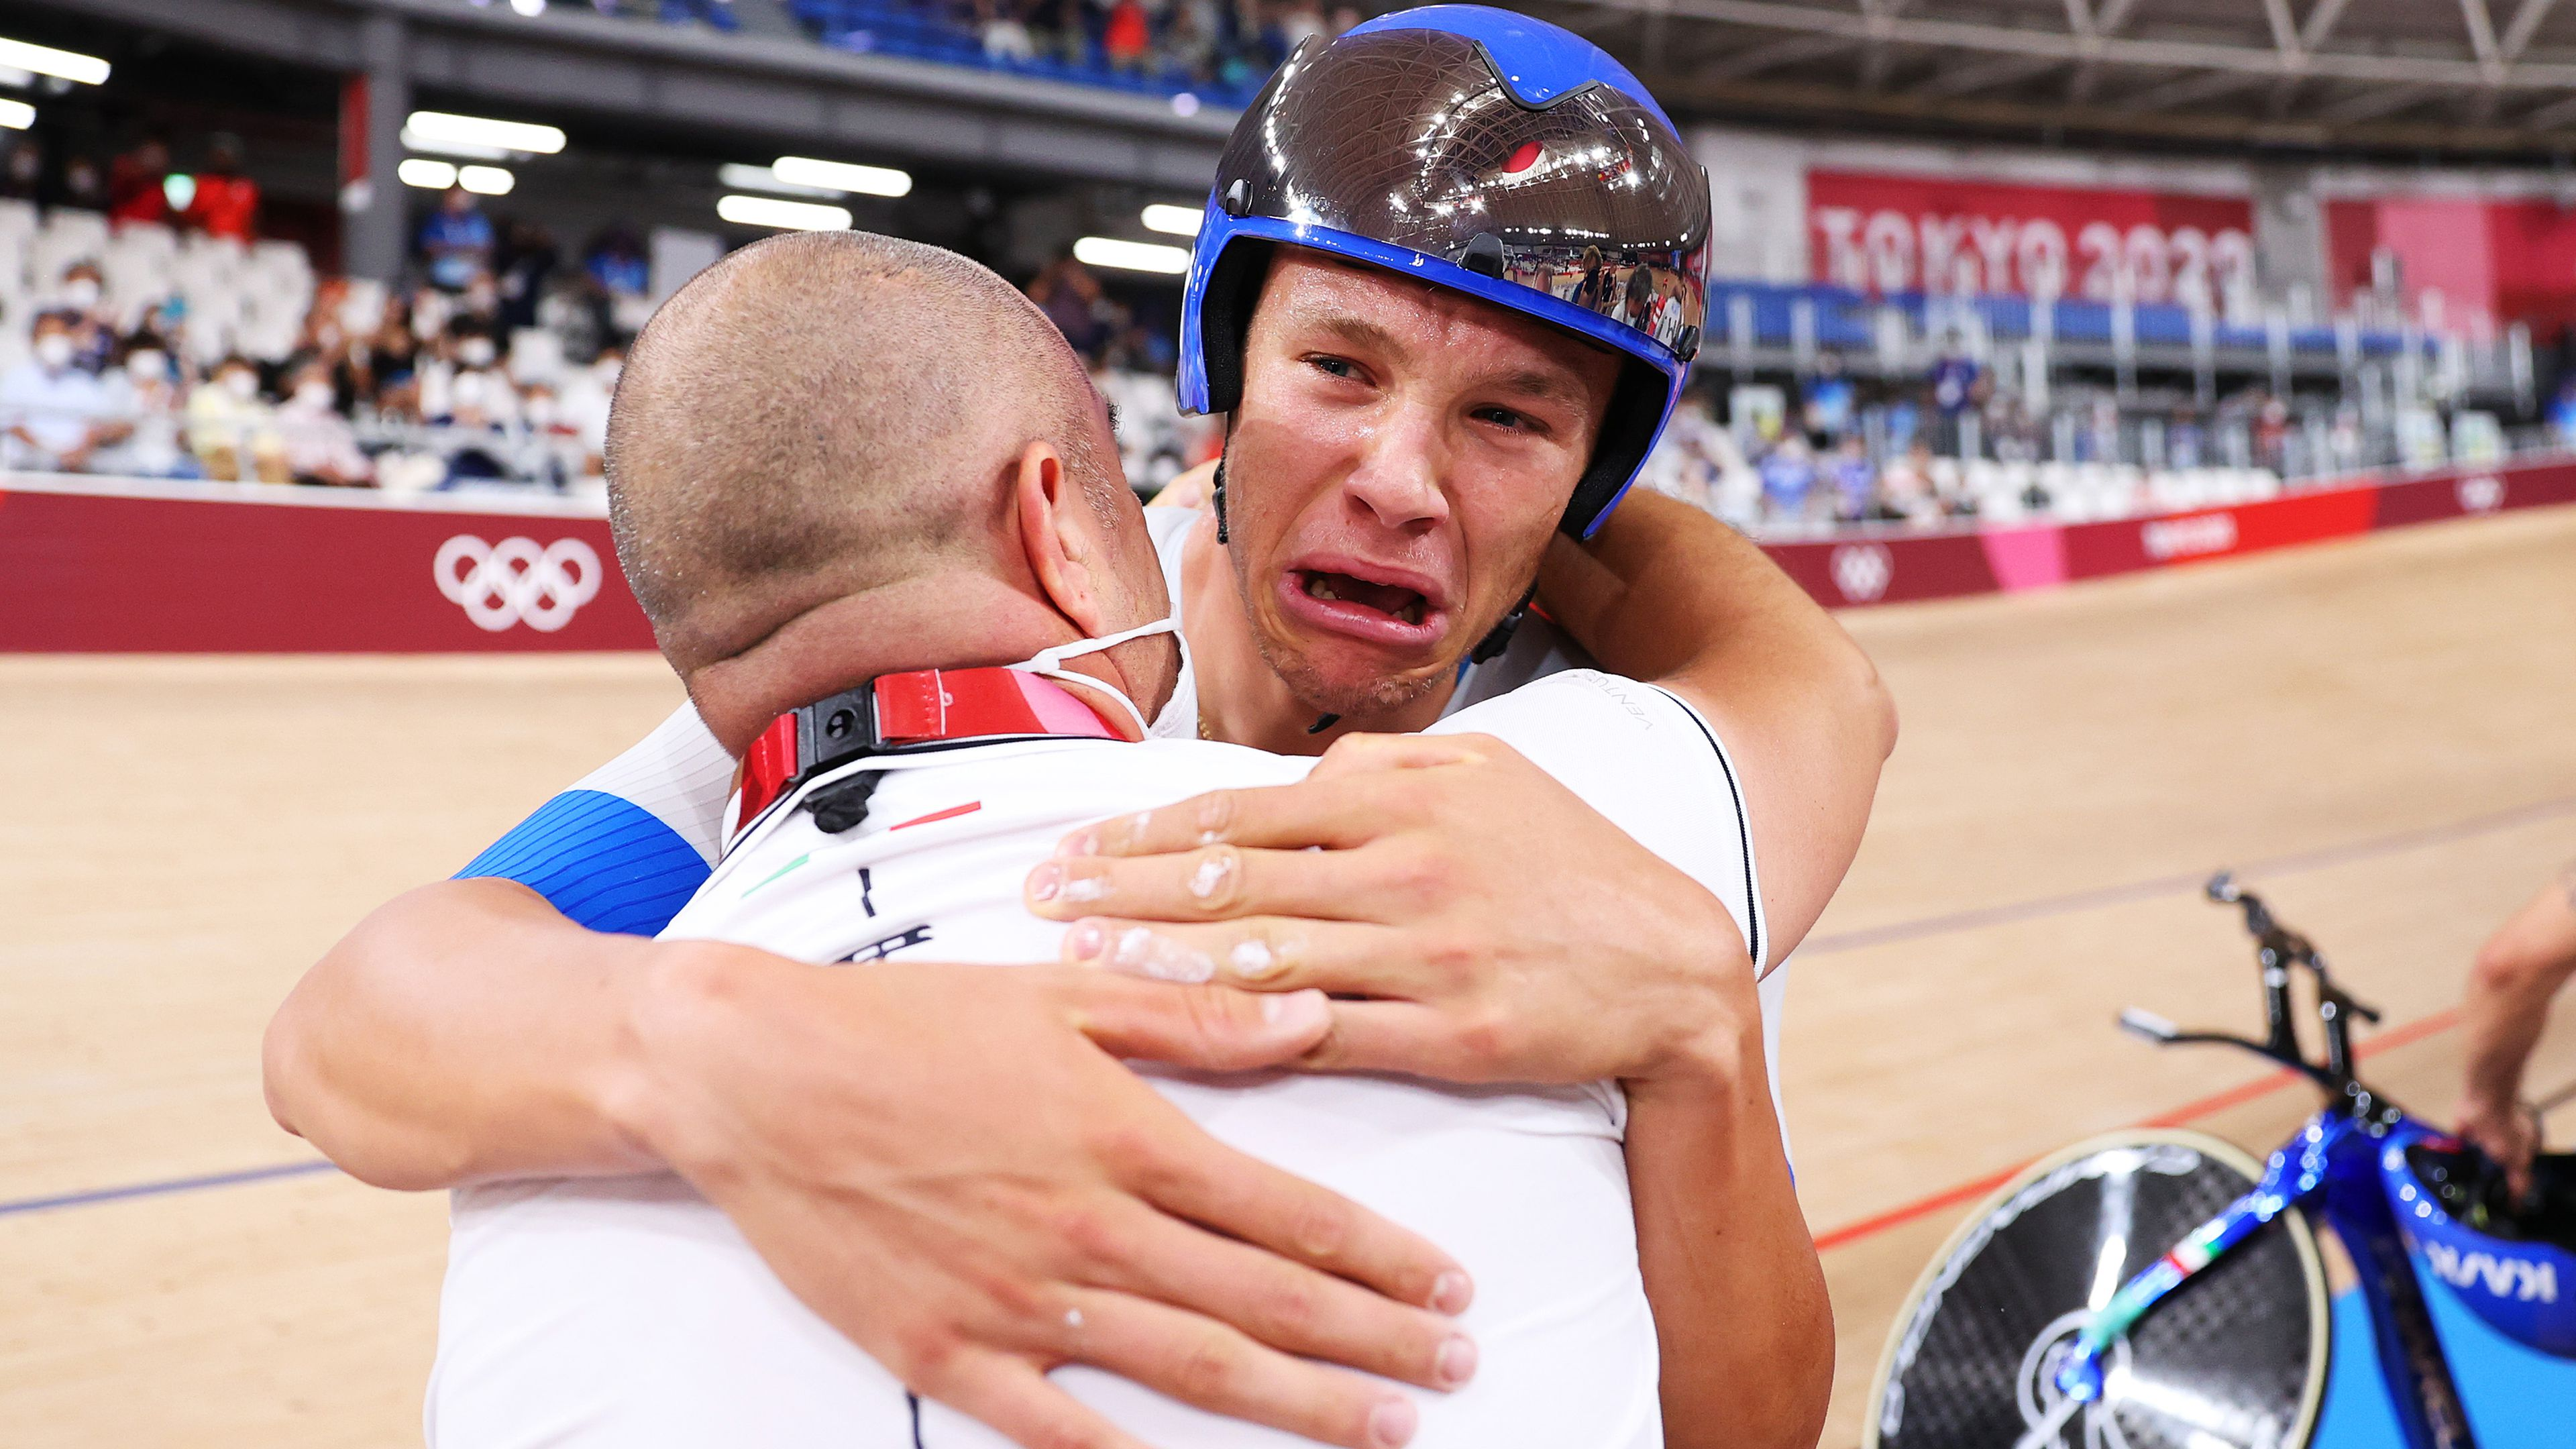 Tears as Italy win track cycling gold in team pursuit, while Aussies grab bronze